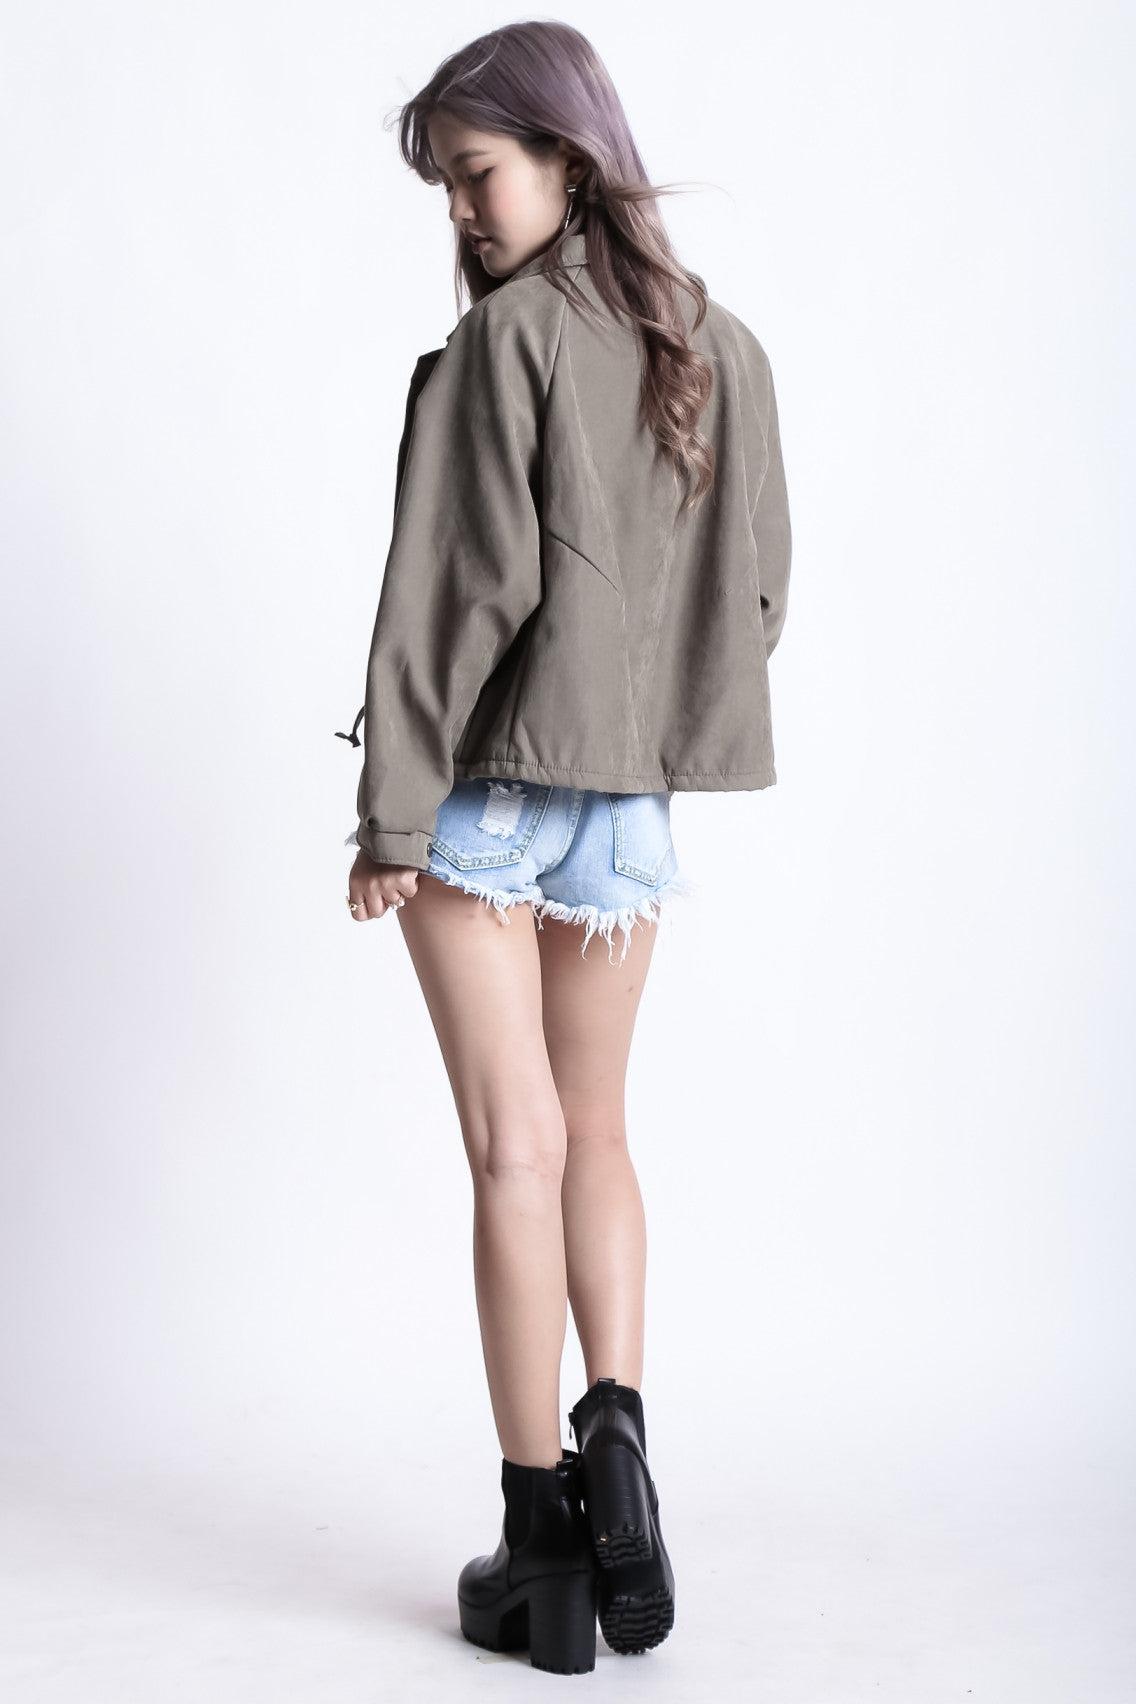 (PREMIUM) ASTOMIC PARKA IN OLIVE - TOPAZETTE